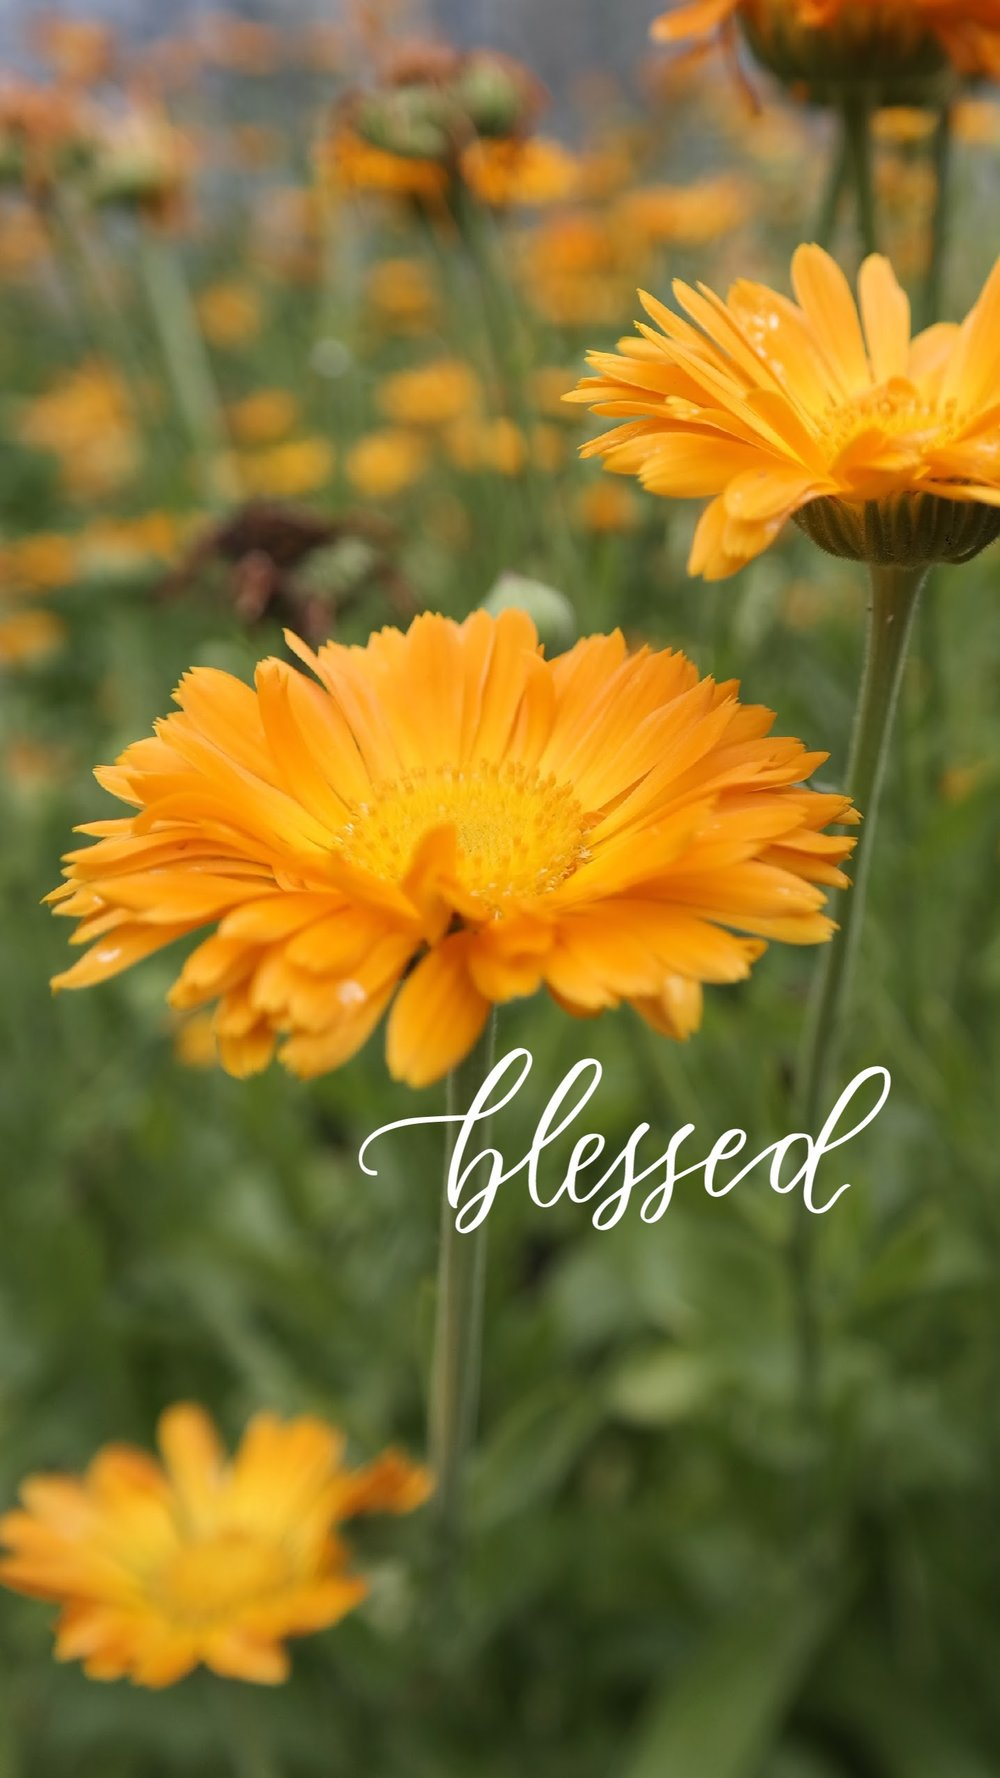 orange-daisies-blessed.jpg